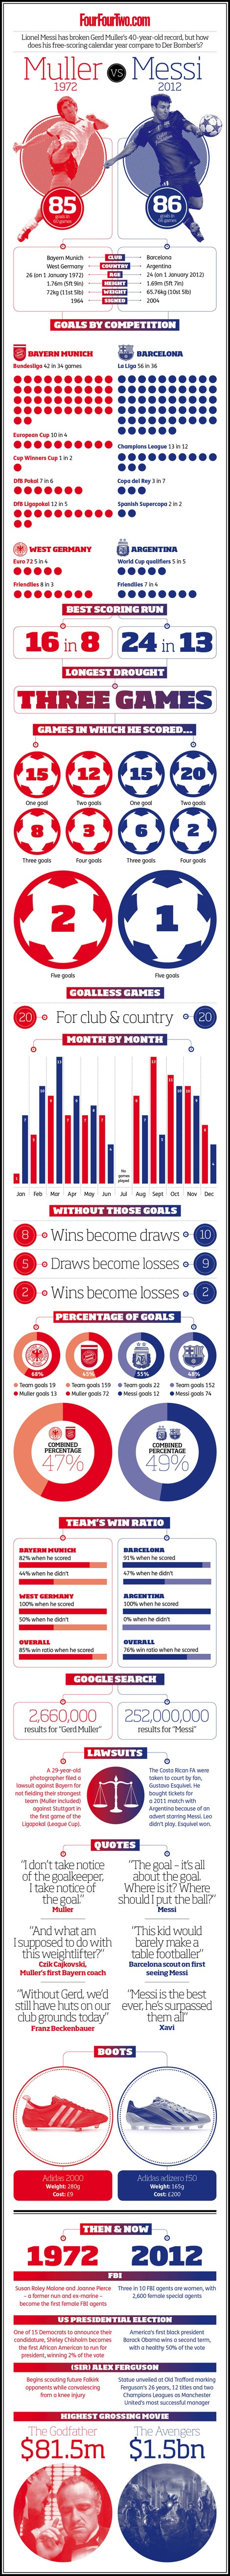 Muller and Messi's Golden Years: A graphical representation - FourFourTwo's Inside Track - FourFourTwo